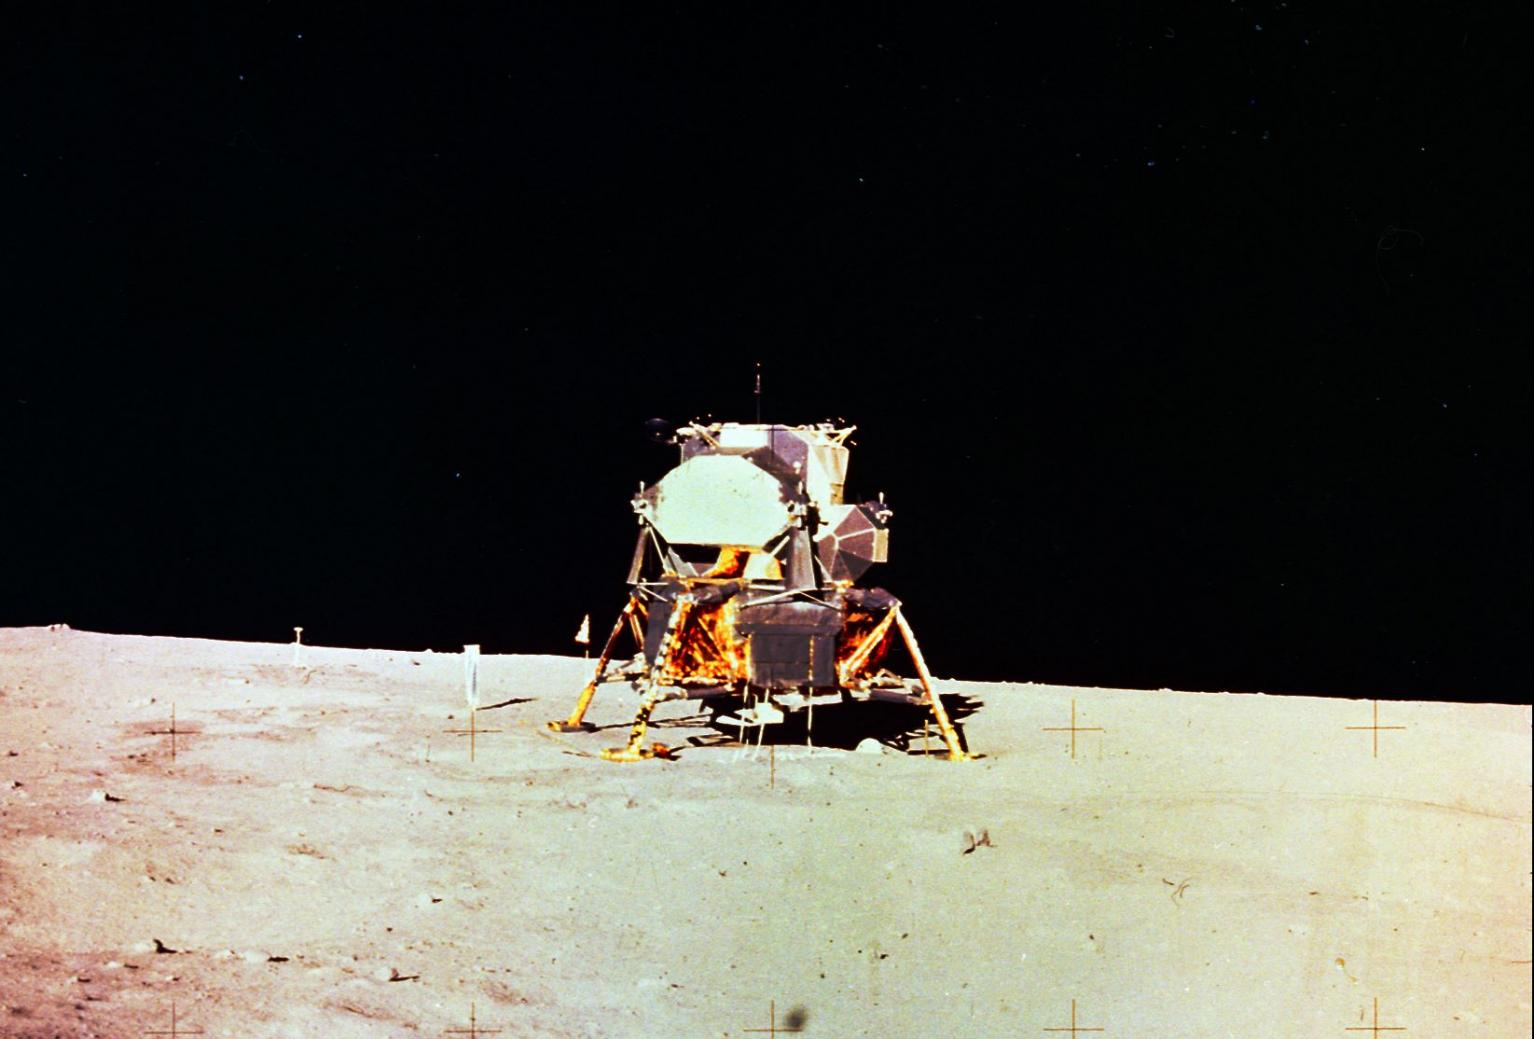 Apollo 11 Lunar Excursion Module, Eagle